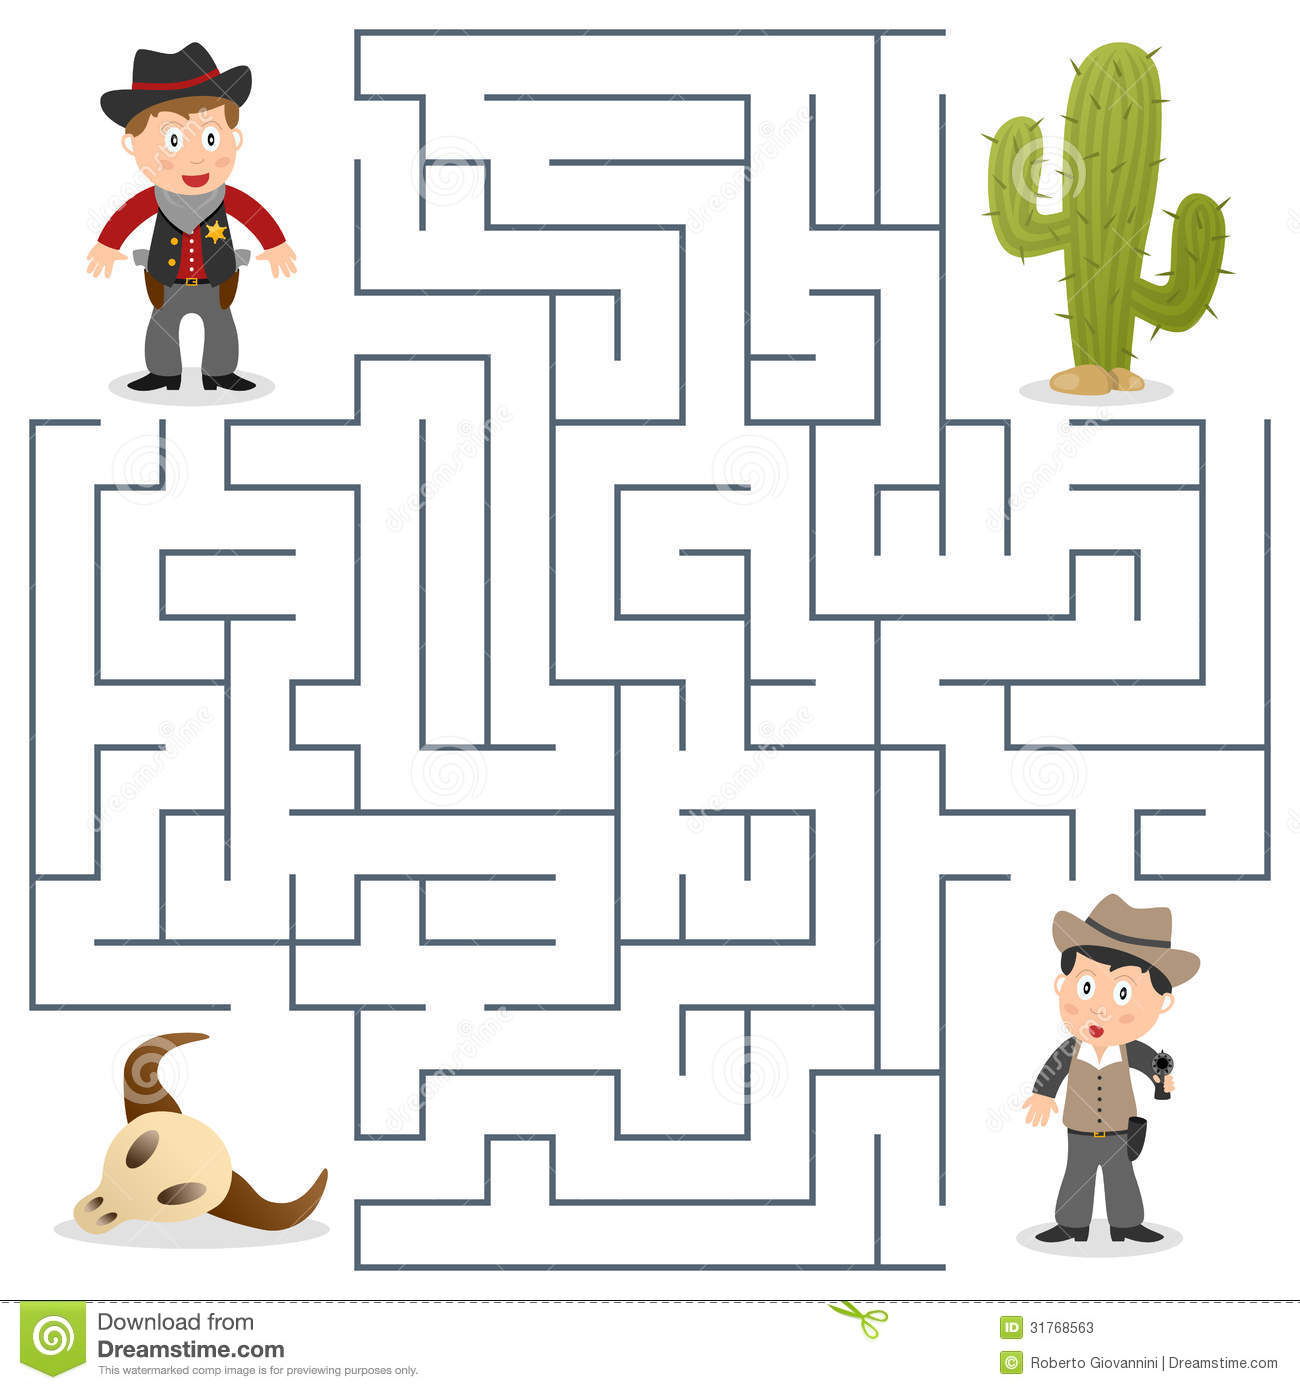 Sheriff Amp Wanted Maze For Kids Stock Vector Illustration